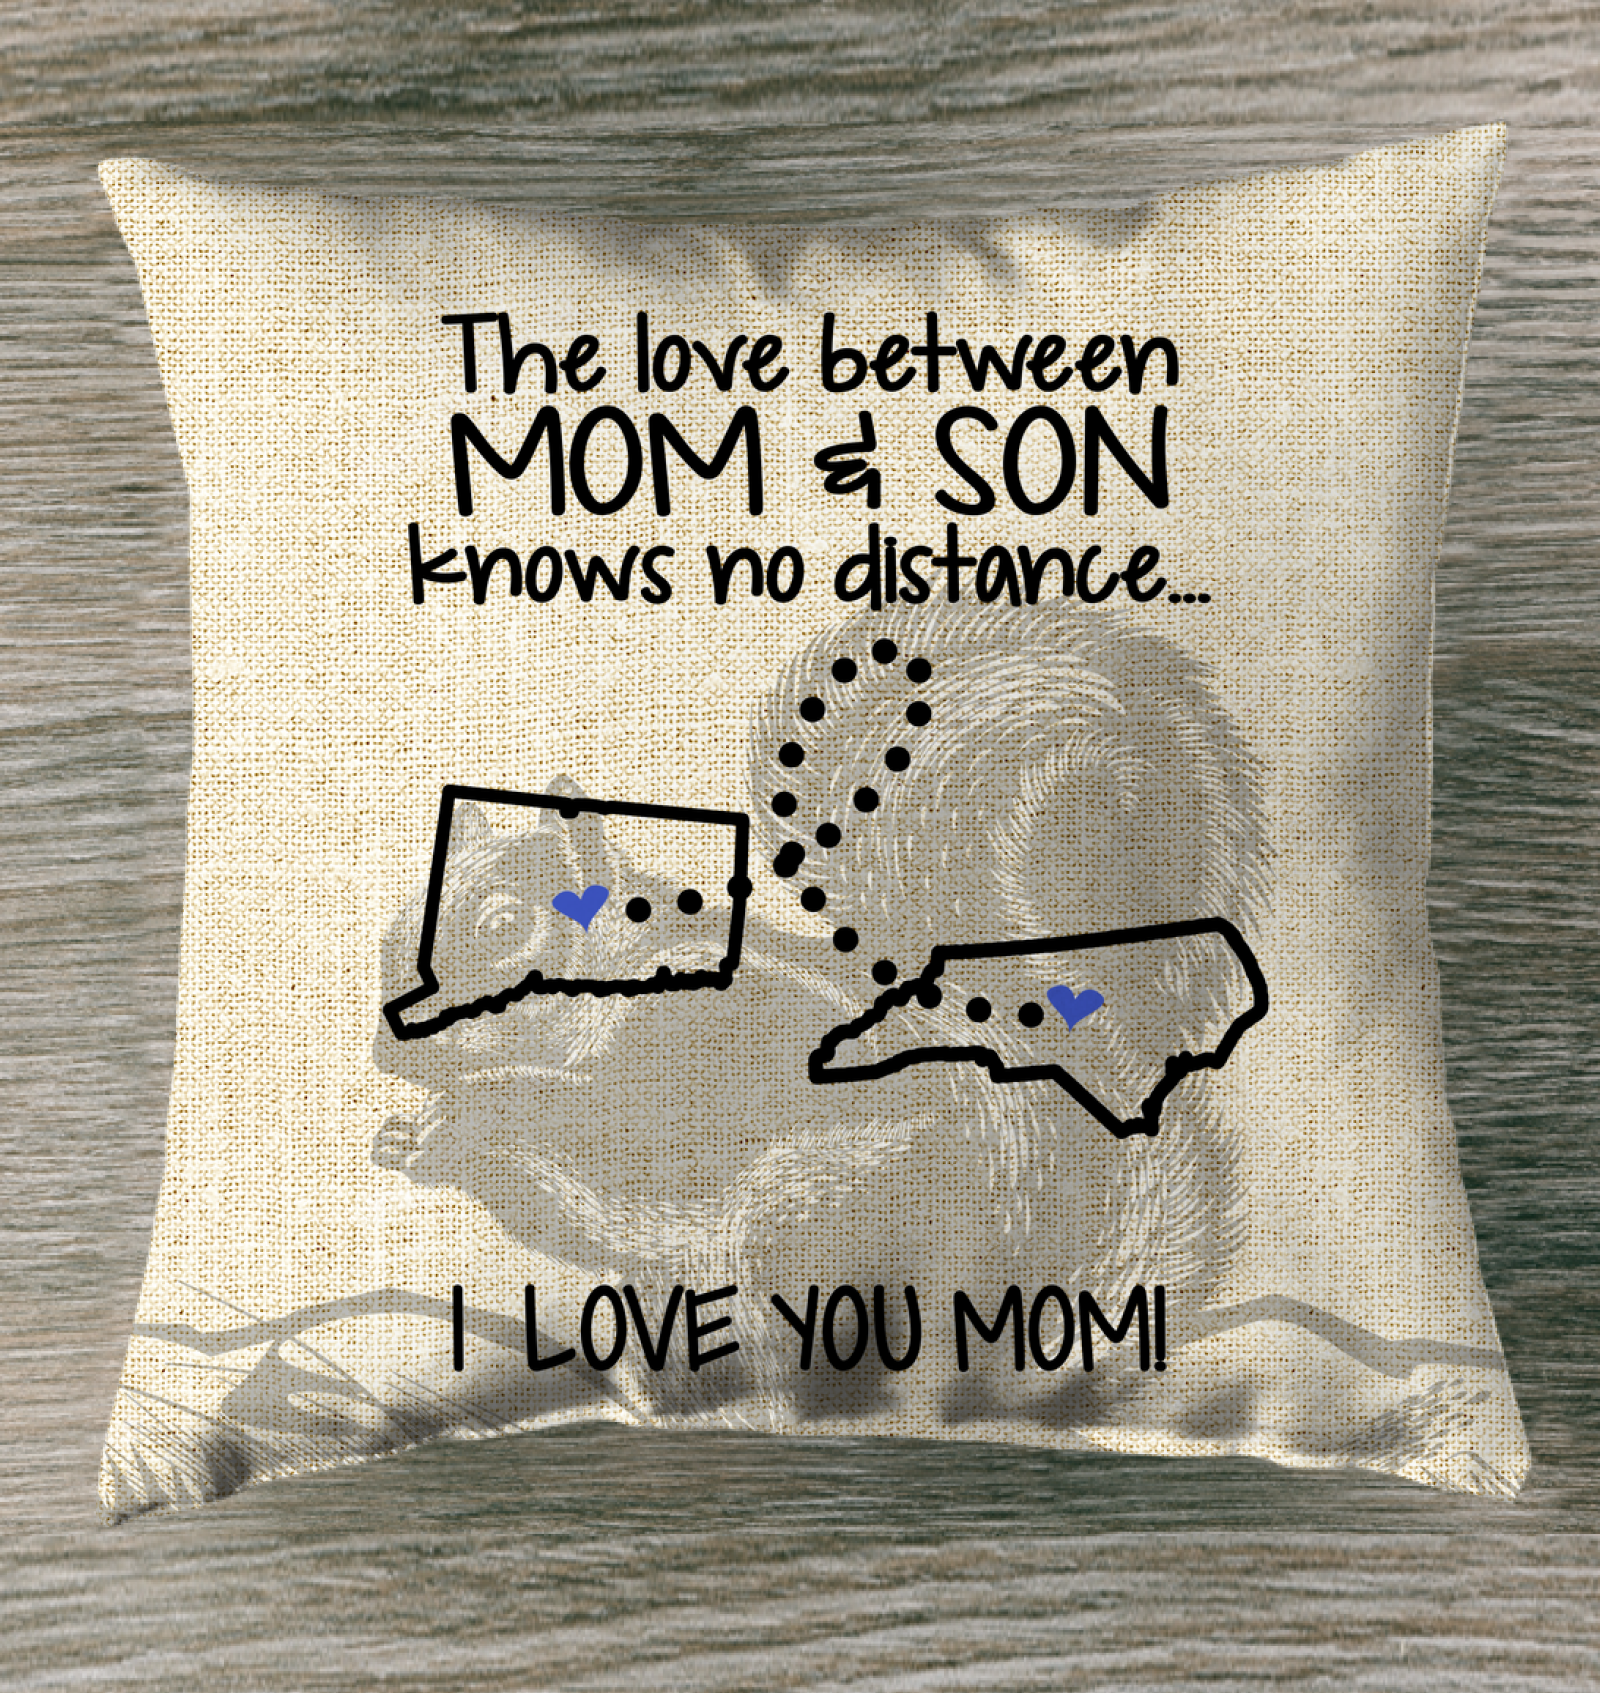 NORTH CAROLINA CONNECTICUT THE LOVE MOM AND SON KNOWS NO DISTANCE